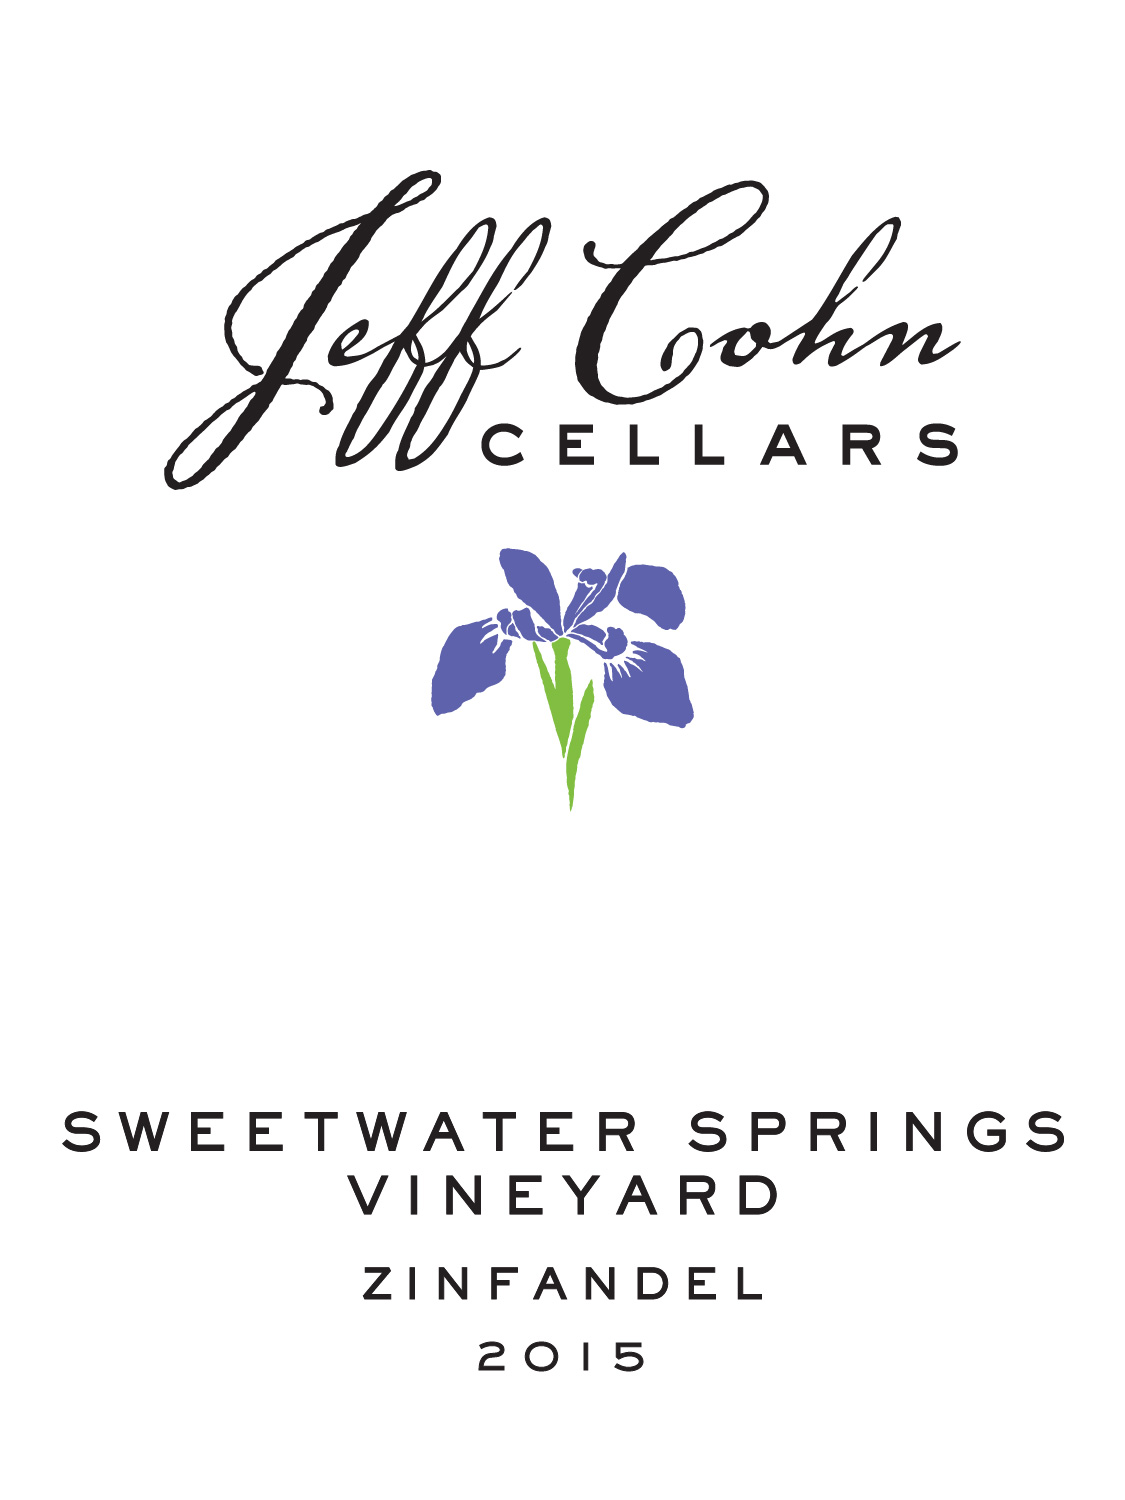 Jeff Cohn Cellars Zinfandel Isabel Sweetwater Springs Vineyard